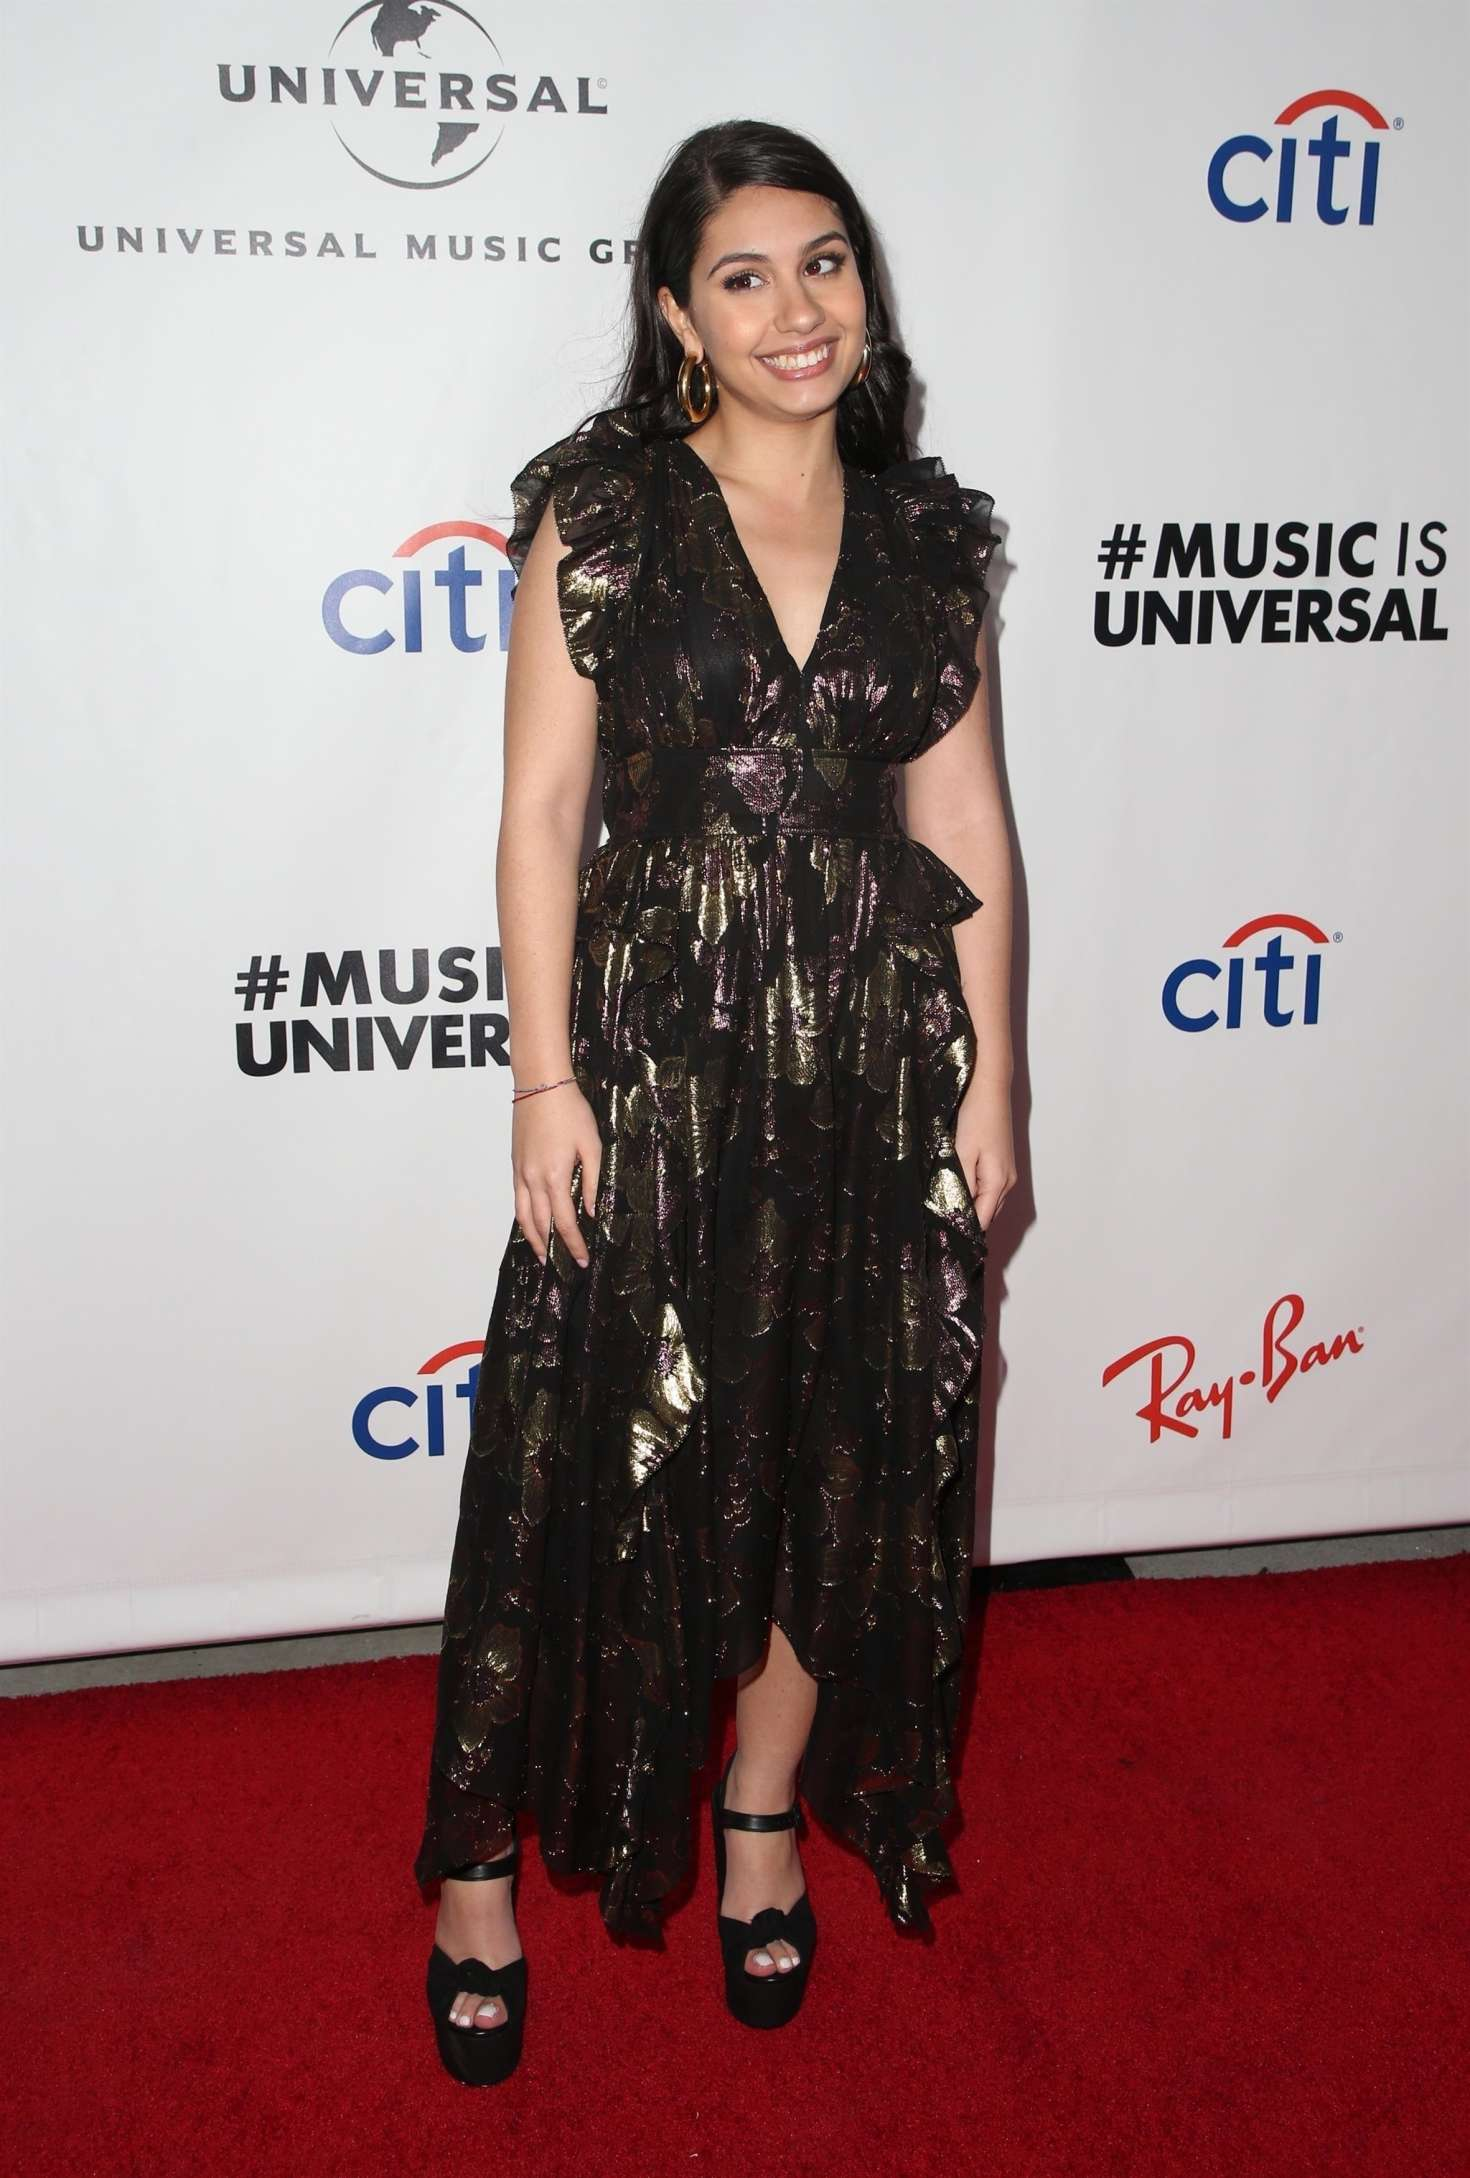 Alessia Cara 2019 : Alessia Cara: 2019 Universals Grammys After Party -05